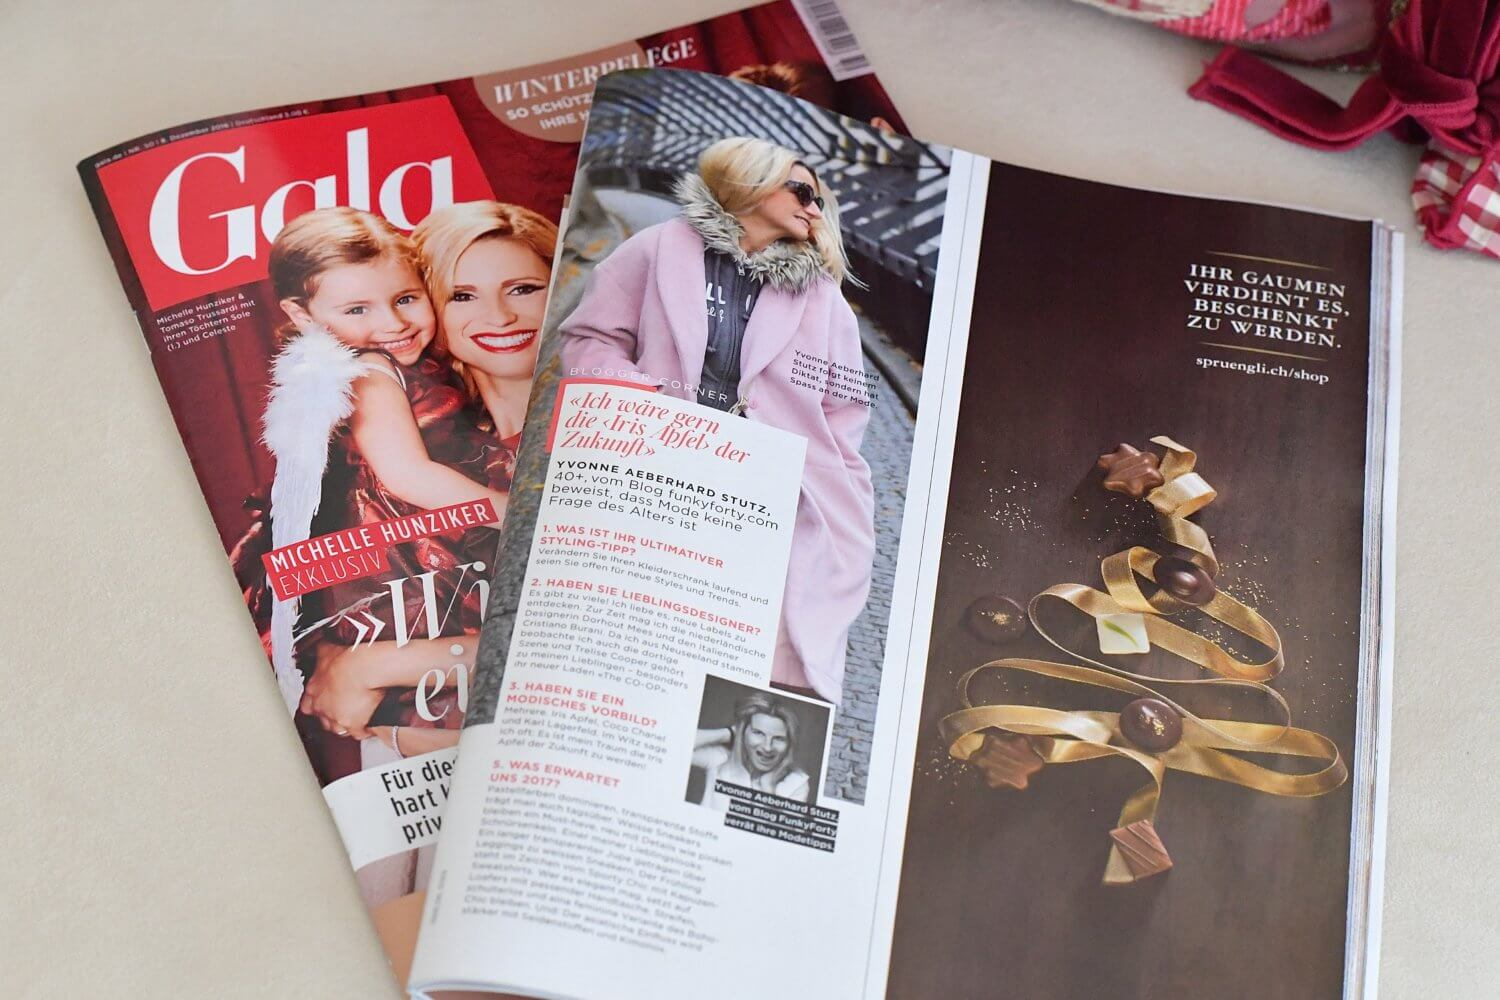 Gala Magazine Archives - FunkyForty   Funky Life style and